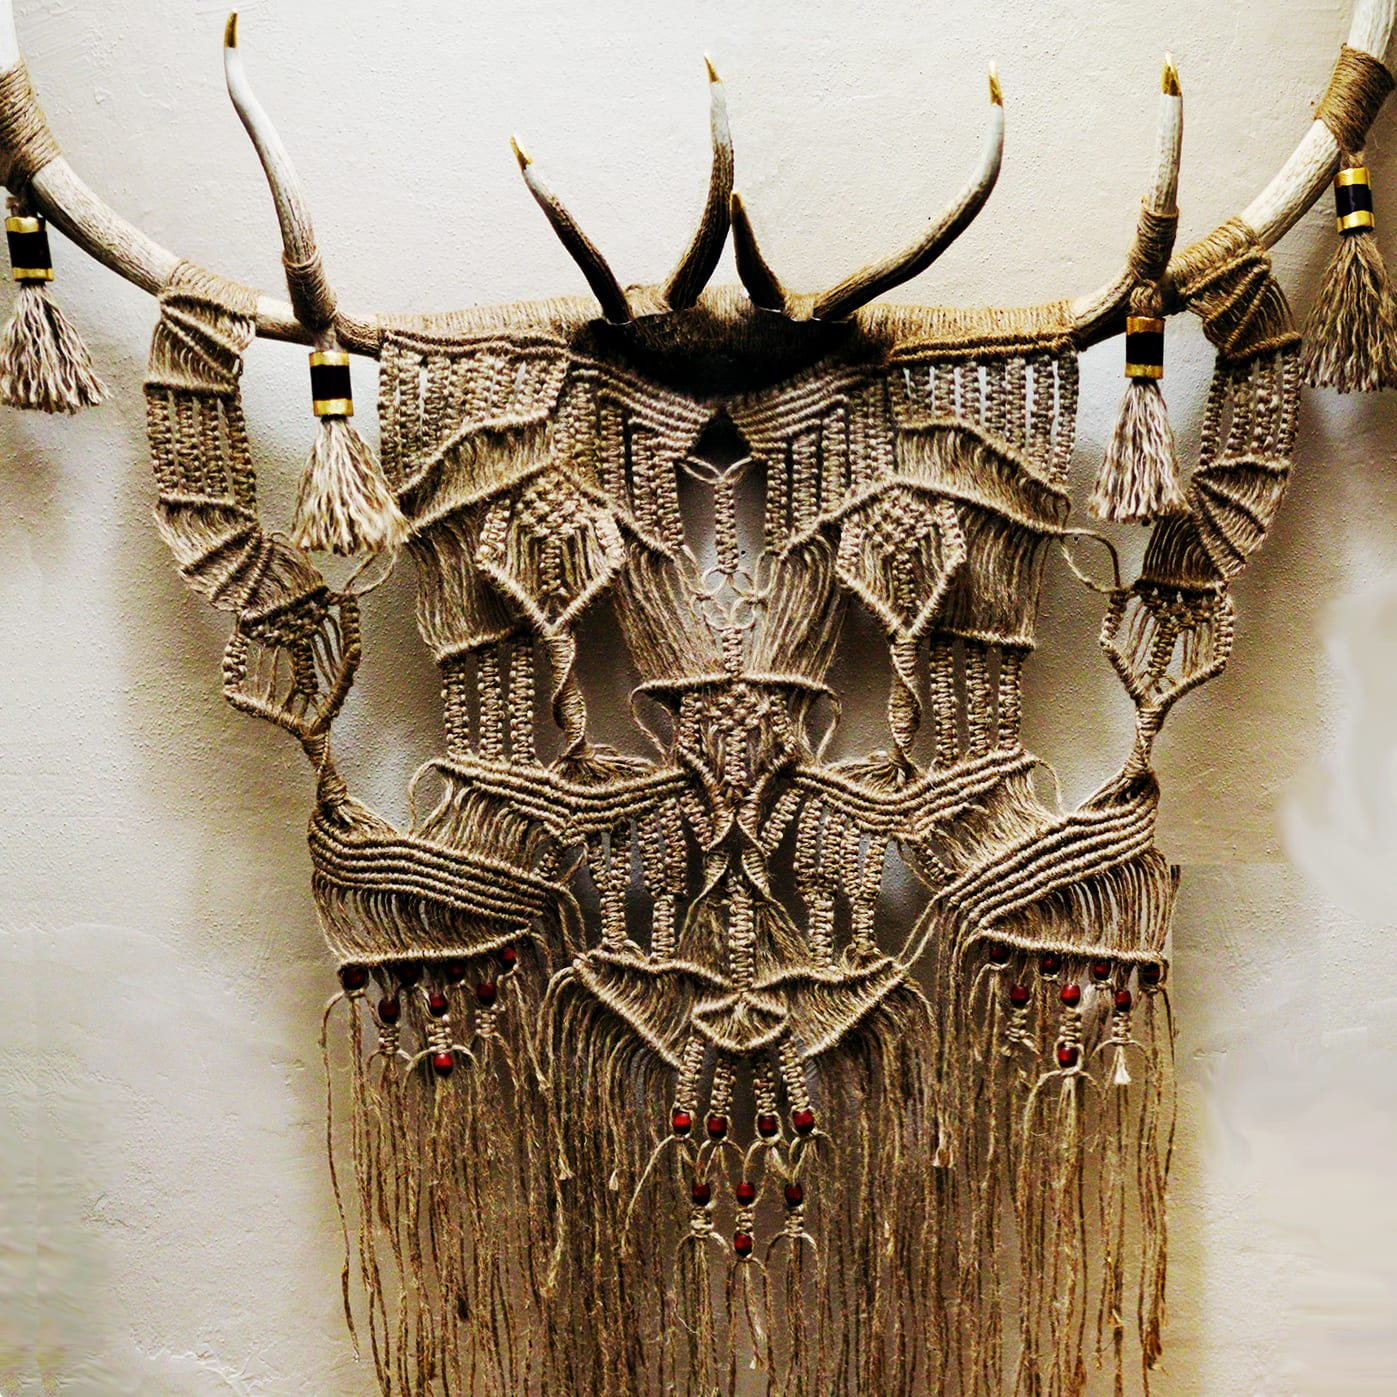 Wall Hanging Macrame with Elk Antlers by Free Creatures, Macrame Wall Hanging at EAST, Miami, Restaurant